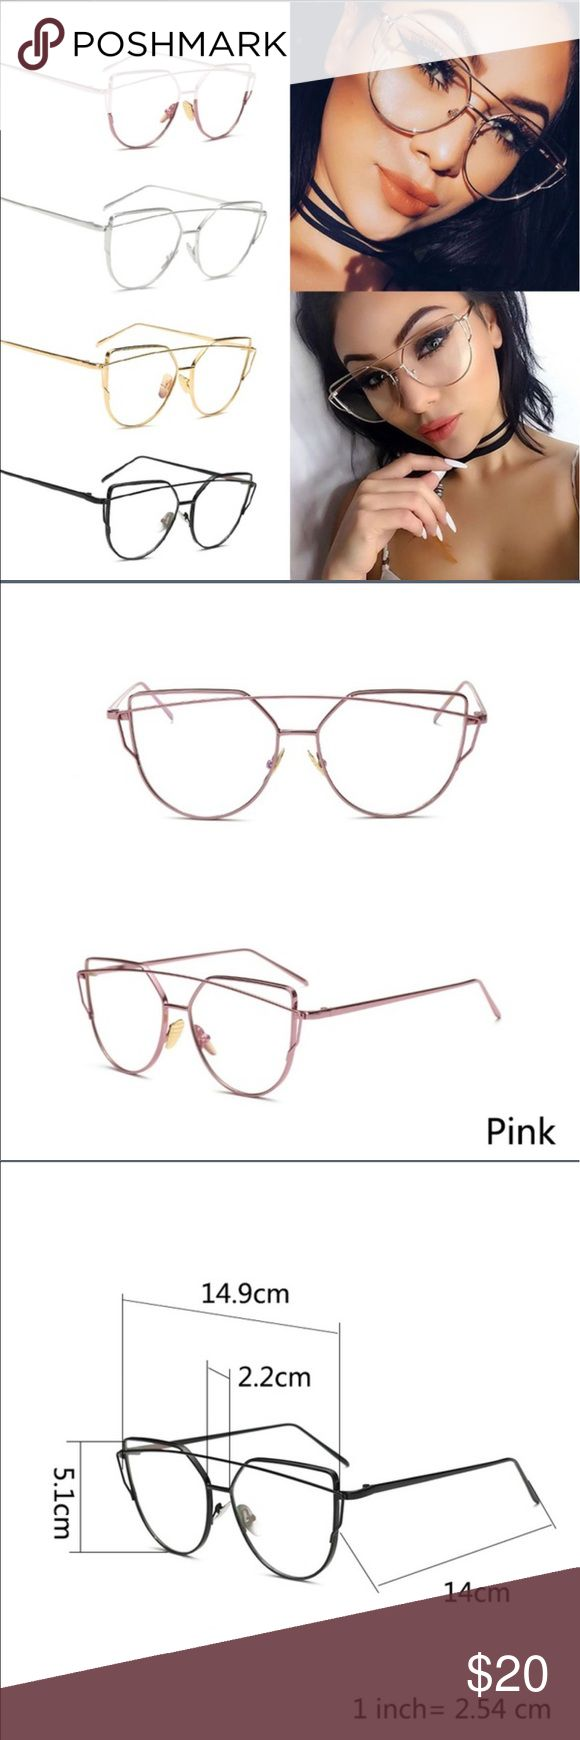 ☄️ Summer '17 Women's cat-eye sunglasses NO TRADES 🙅🏻 ALL REASONABLE OFFERS ARE ACCEPTED 😊👍🏽 NO LOWBALLERS!!! 😒✌🏽️✌🏽 LET'S BUNDLE!!!! 🎋🎉🎁🎊 Accessories Glasses